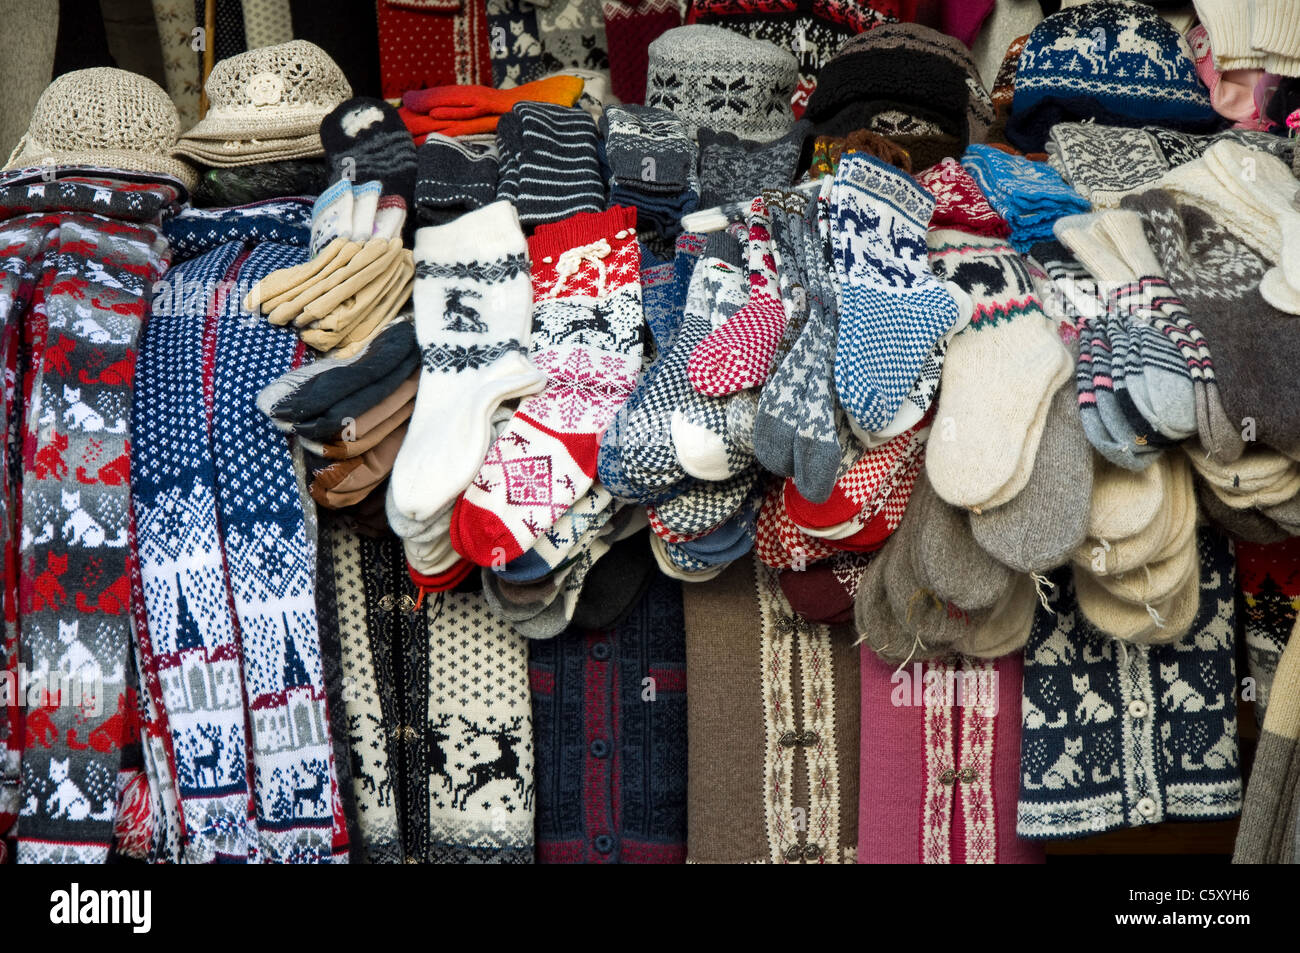 Local handicrafts, Tallinn, Estonia - Stock Image